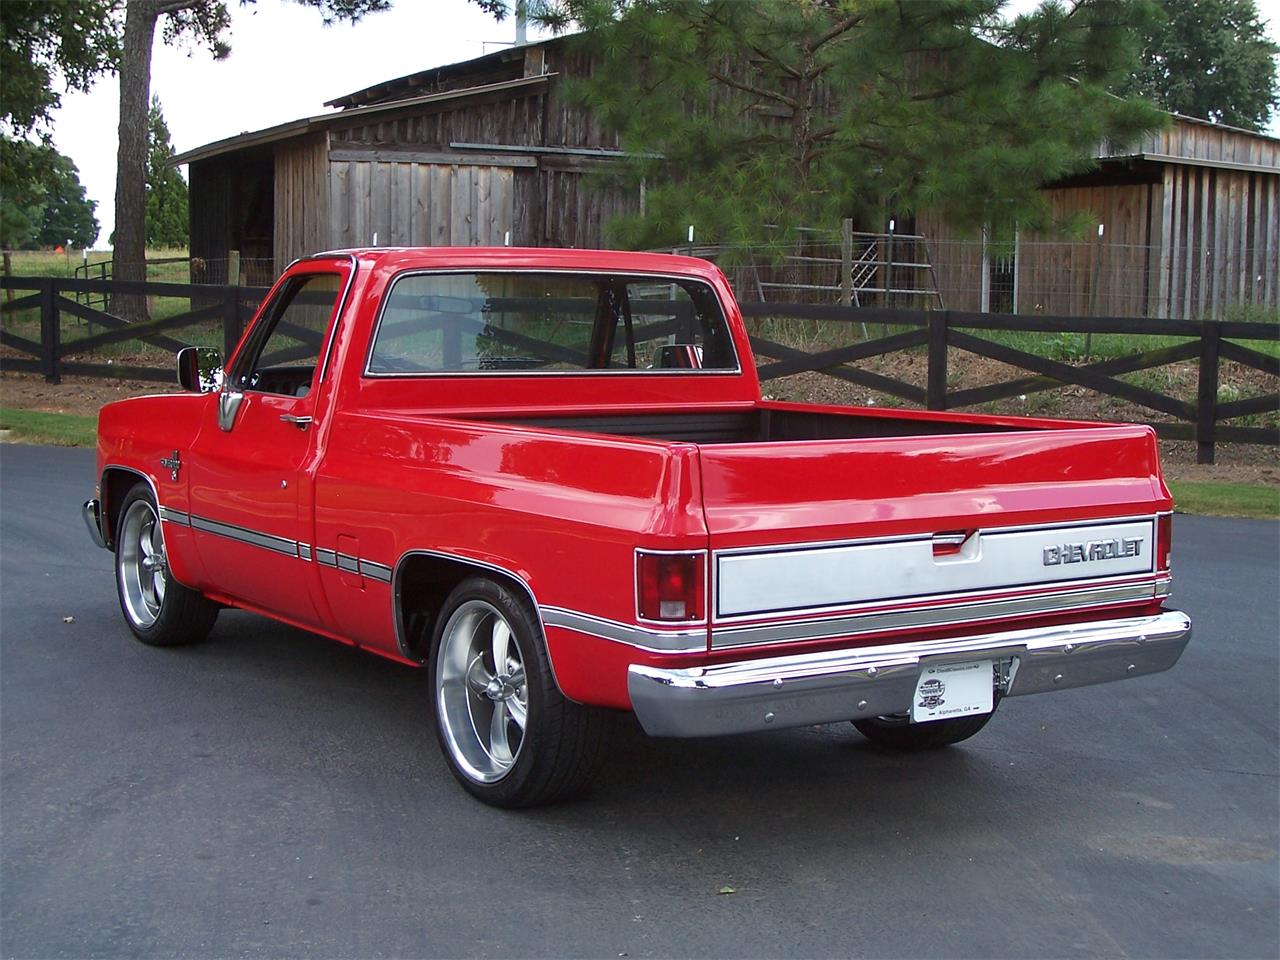 1985 Chevrolet C/K 10 for sale in Alpharetta, GA – photo 8